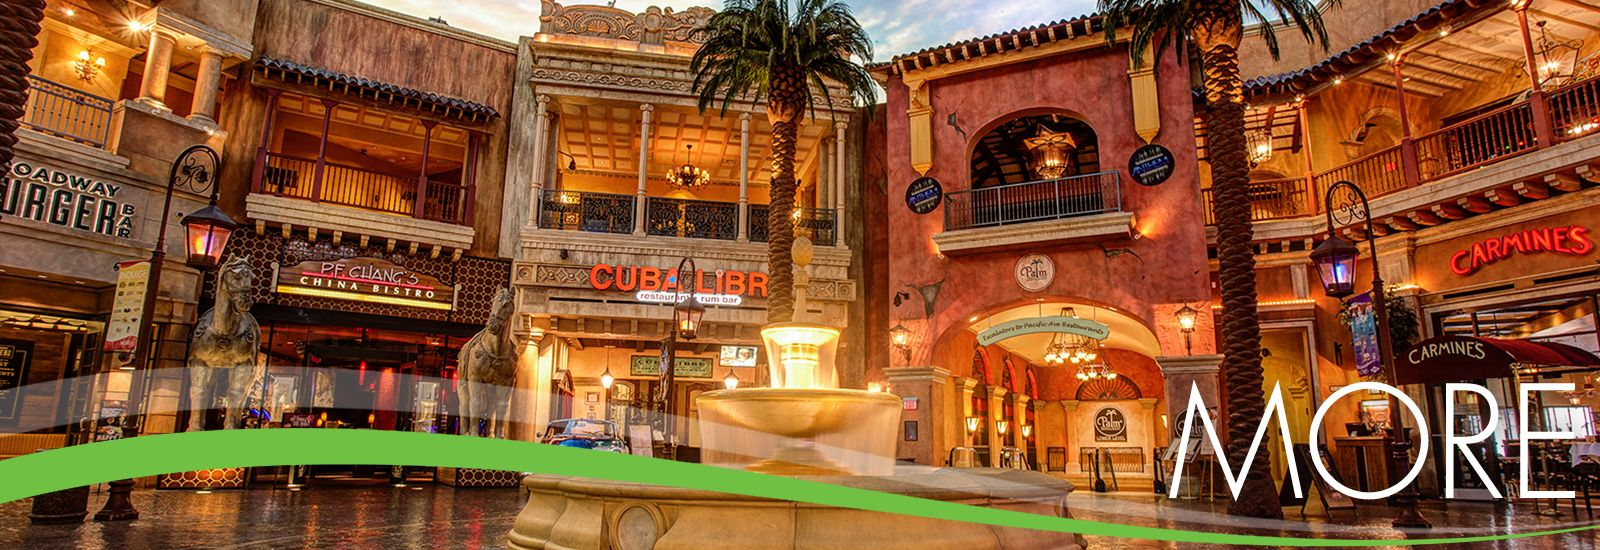 The Quarter In Atlantic City Houses World Class Dining Entertainment Nightlife And Shopping Atlantic City Boardwalk Atlantic City Atlantic City Restaurants